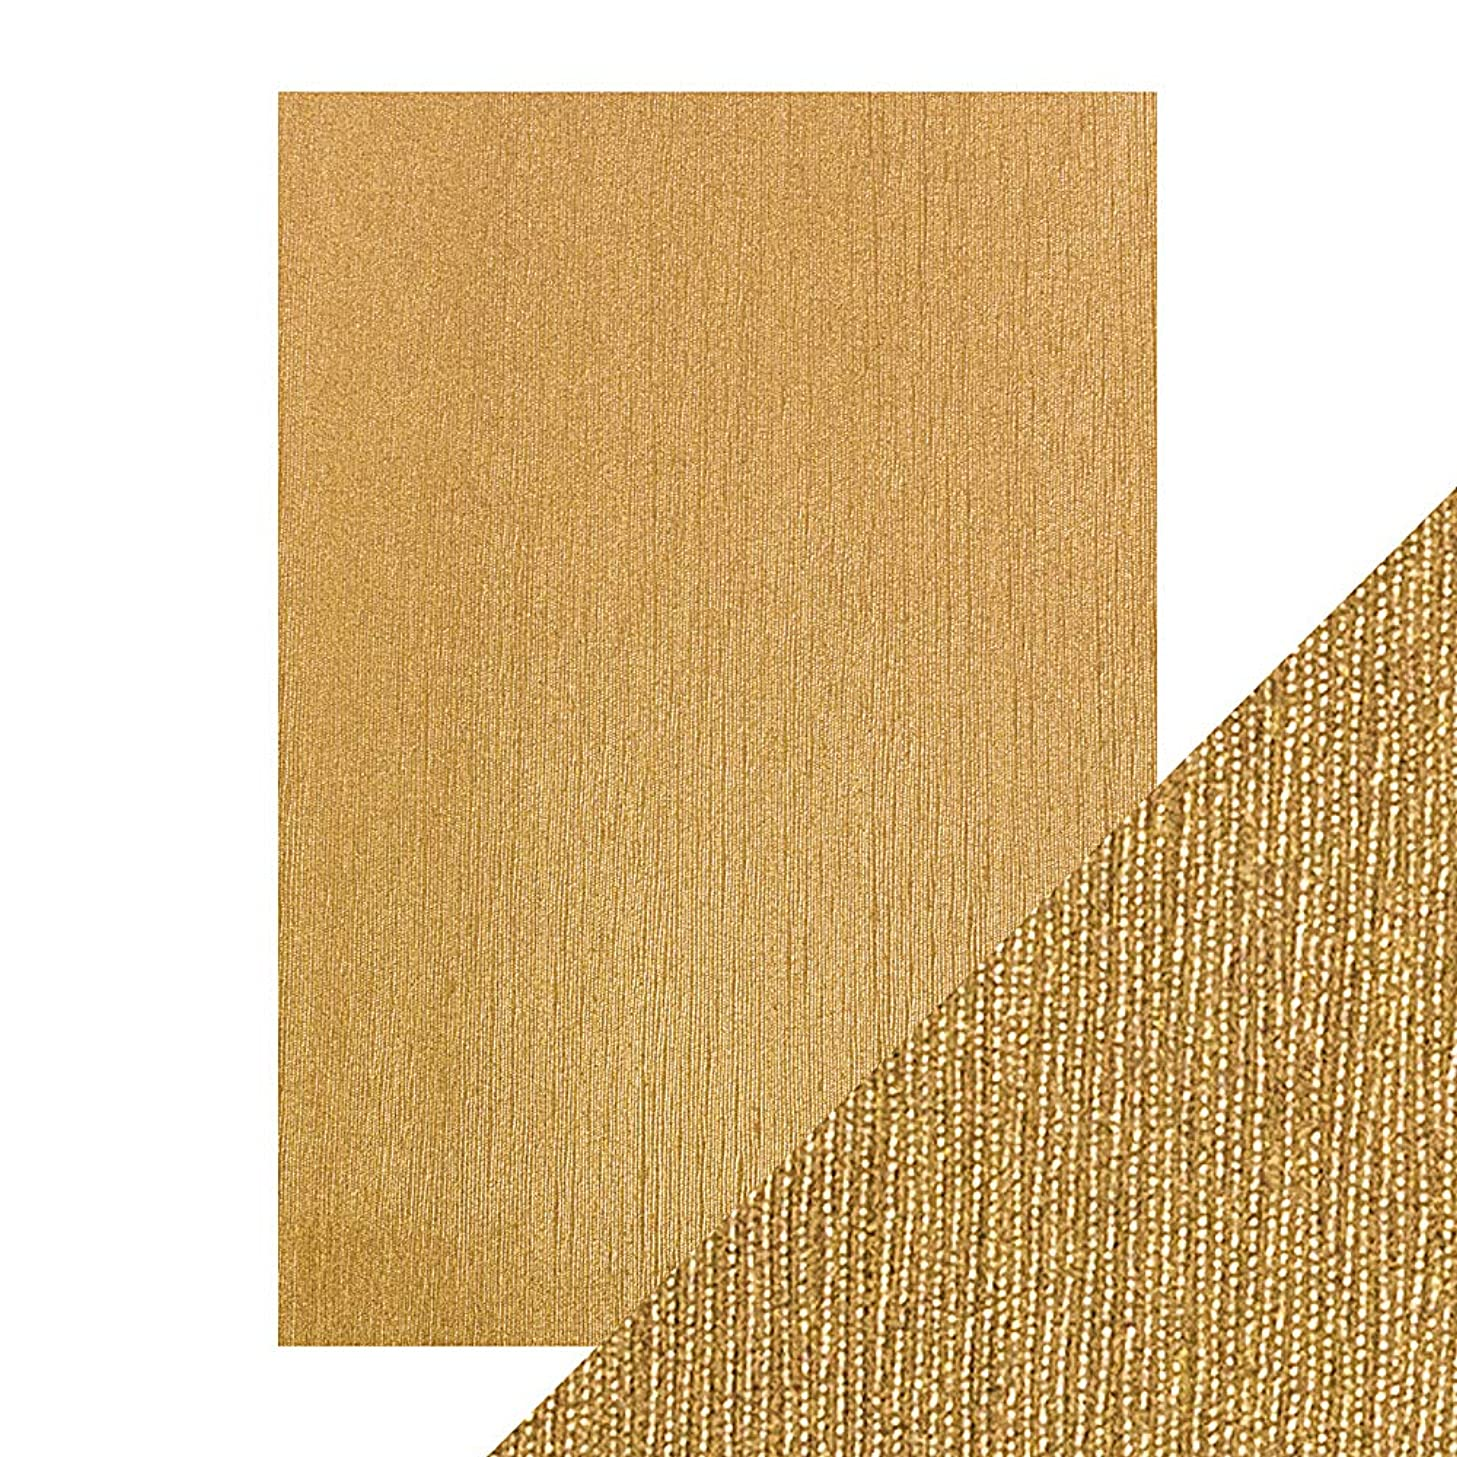 Craft Perfect Luxury Embossed A4 Cardstock 5/Pkg-Cinnamon Silk